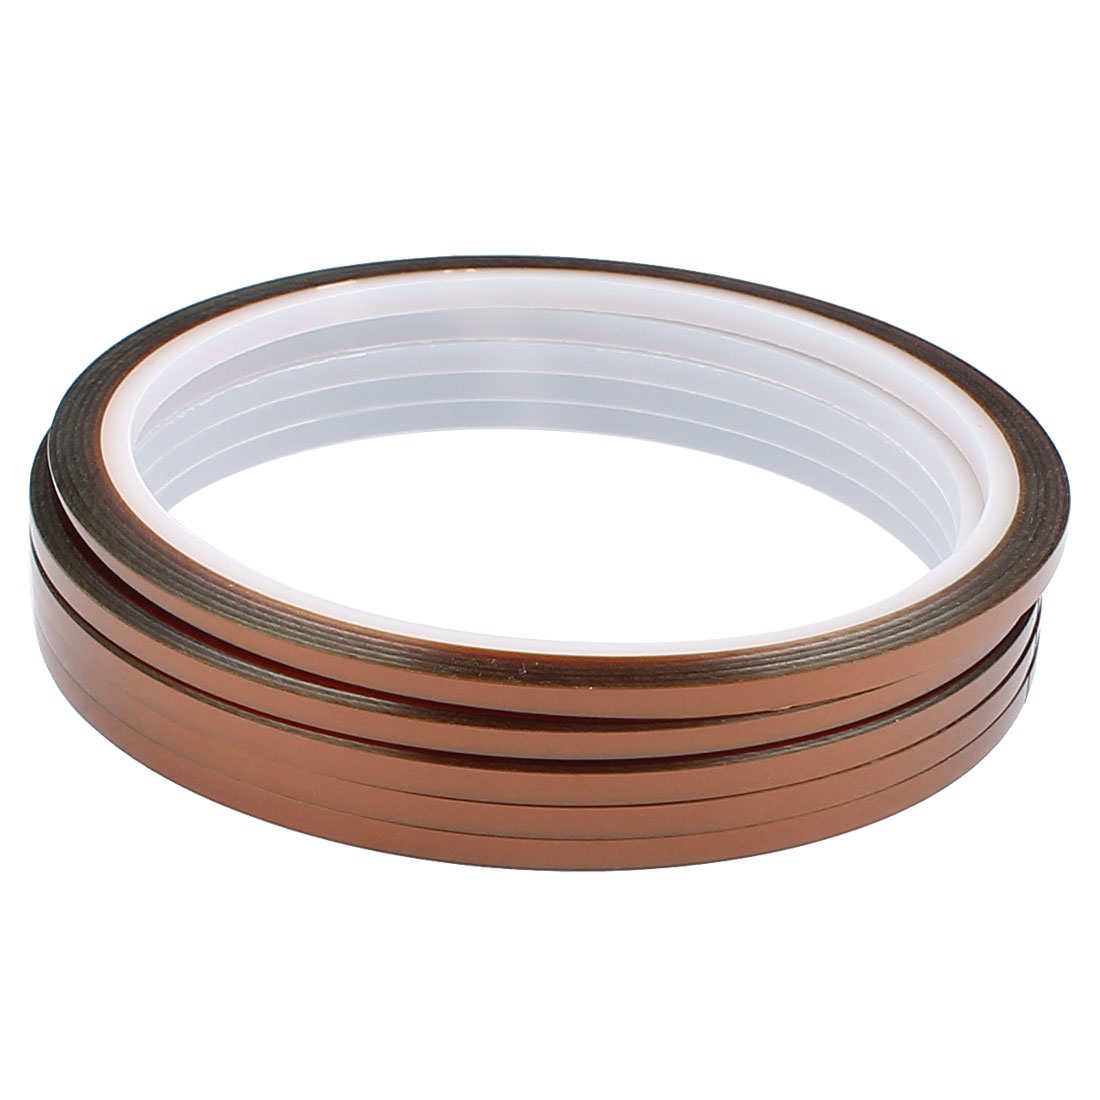 5 Pcs 0.3CM Width 30M Long DIY Tape High Temperature Heat Resistance Polyimide